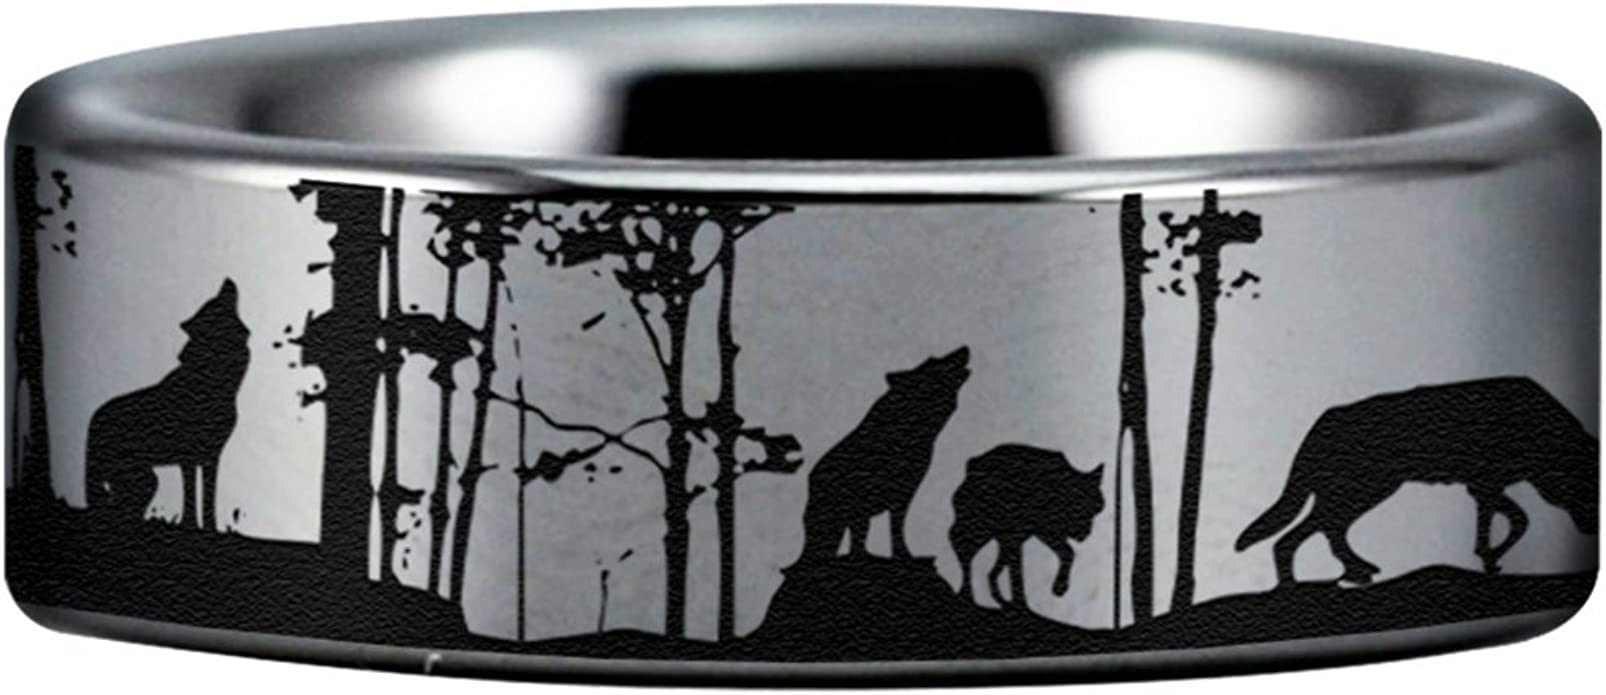 Friends of Irony Silver Tungsten Carbide Wolf Skull and Arrows Ring 8mm Wedding Band and Anniversary Ring Fit for Men and Women Size 11.5